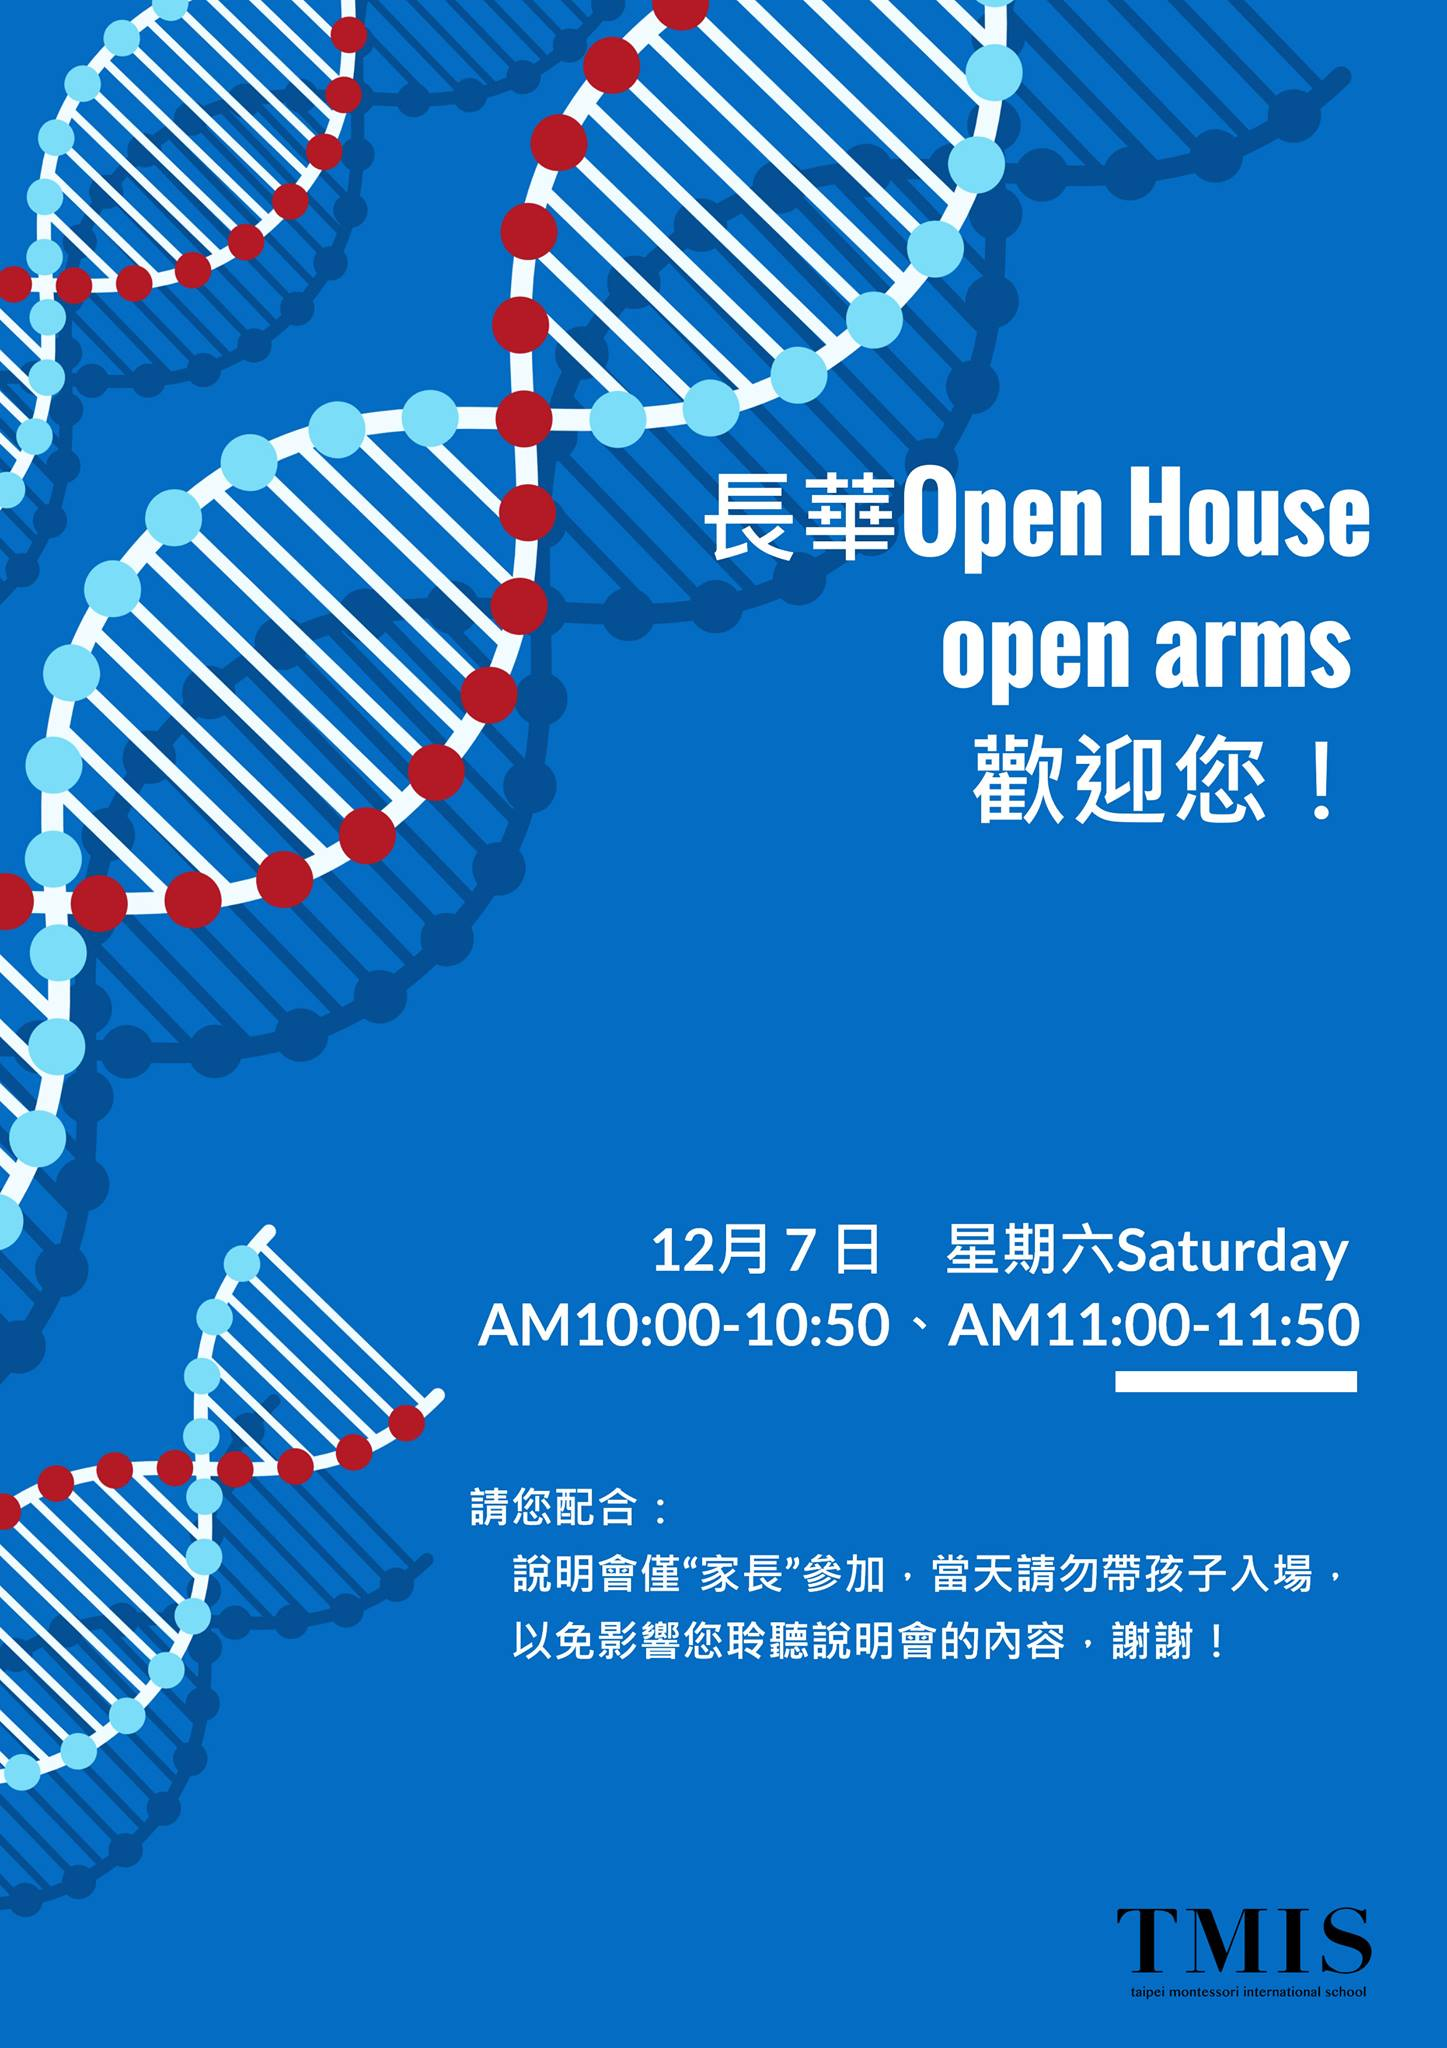 長華 Open House with open arms 歡迎您!